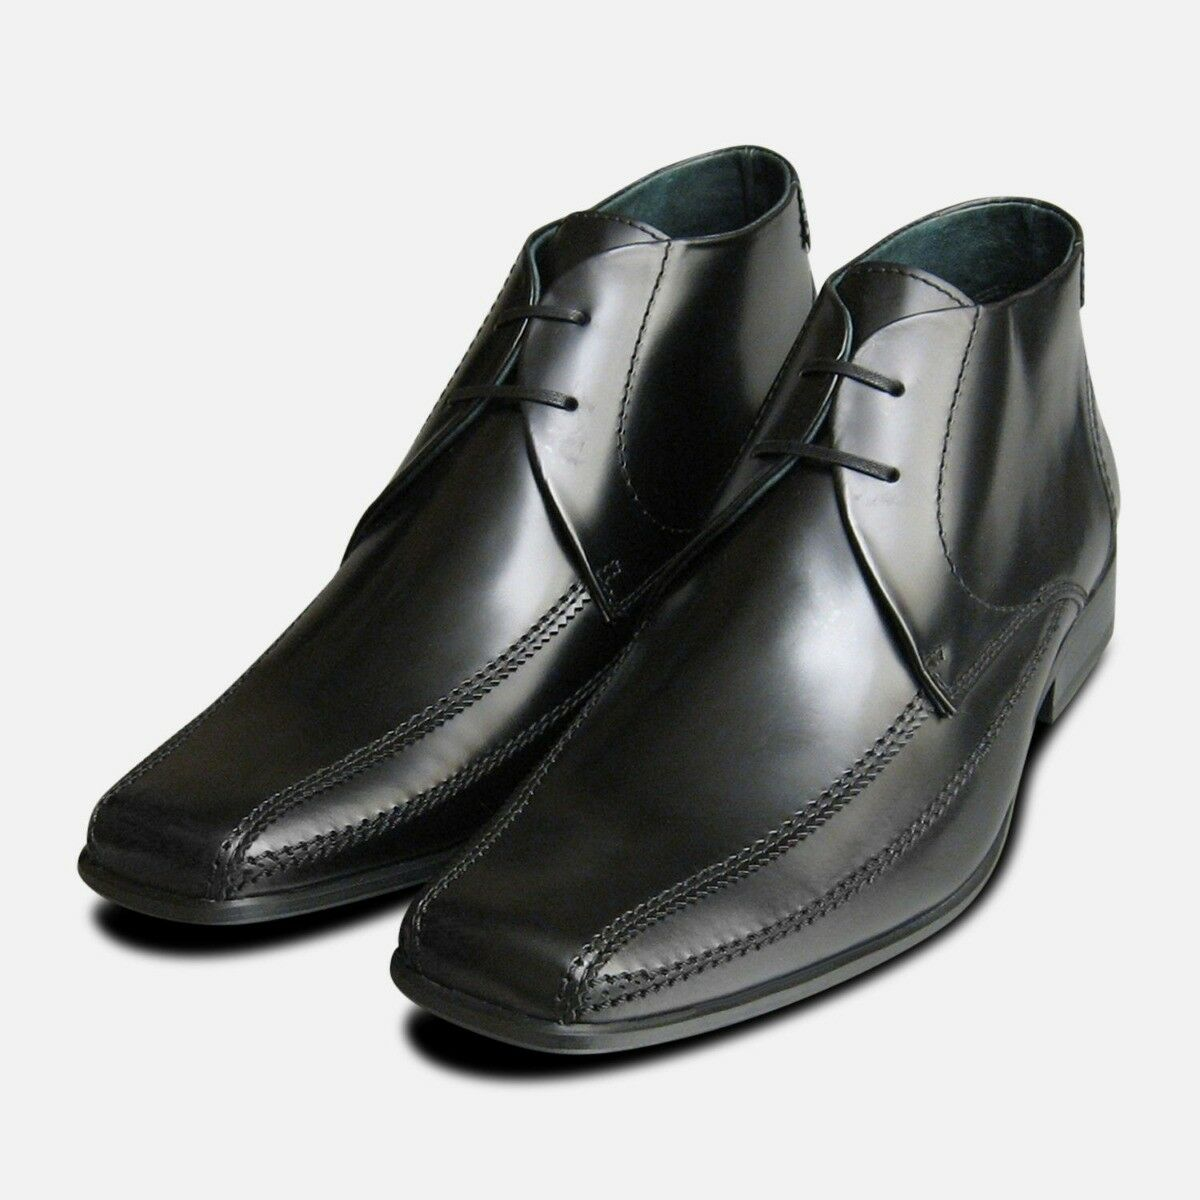 Exceed Black Polished Mens Chukka Boots